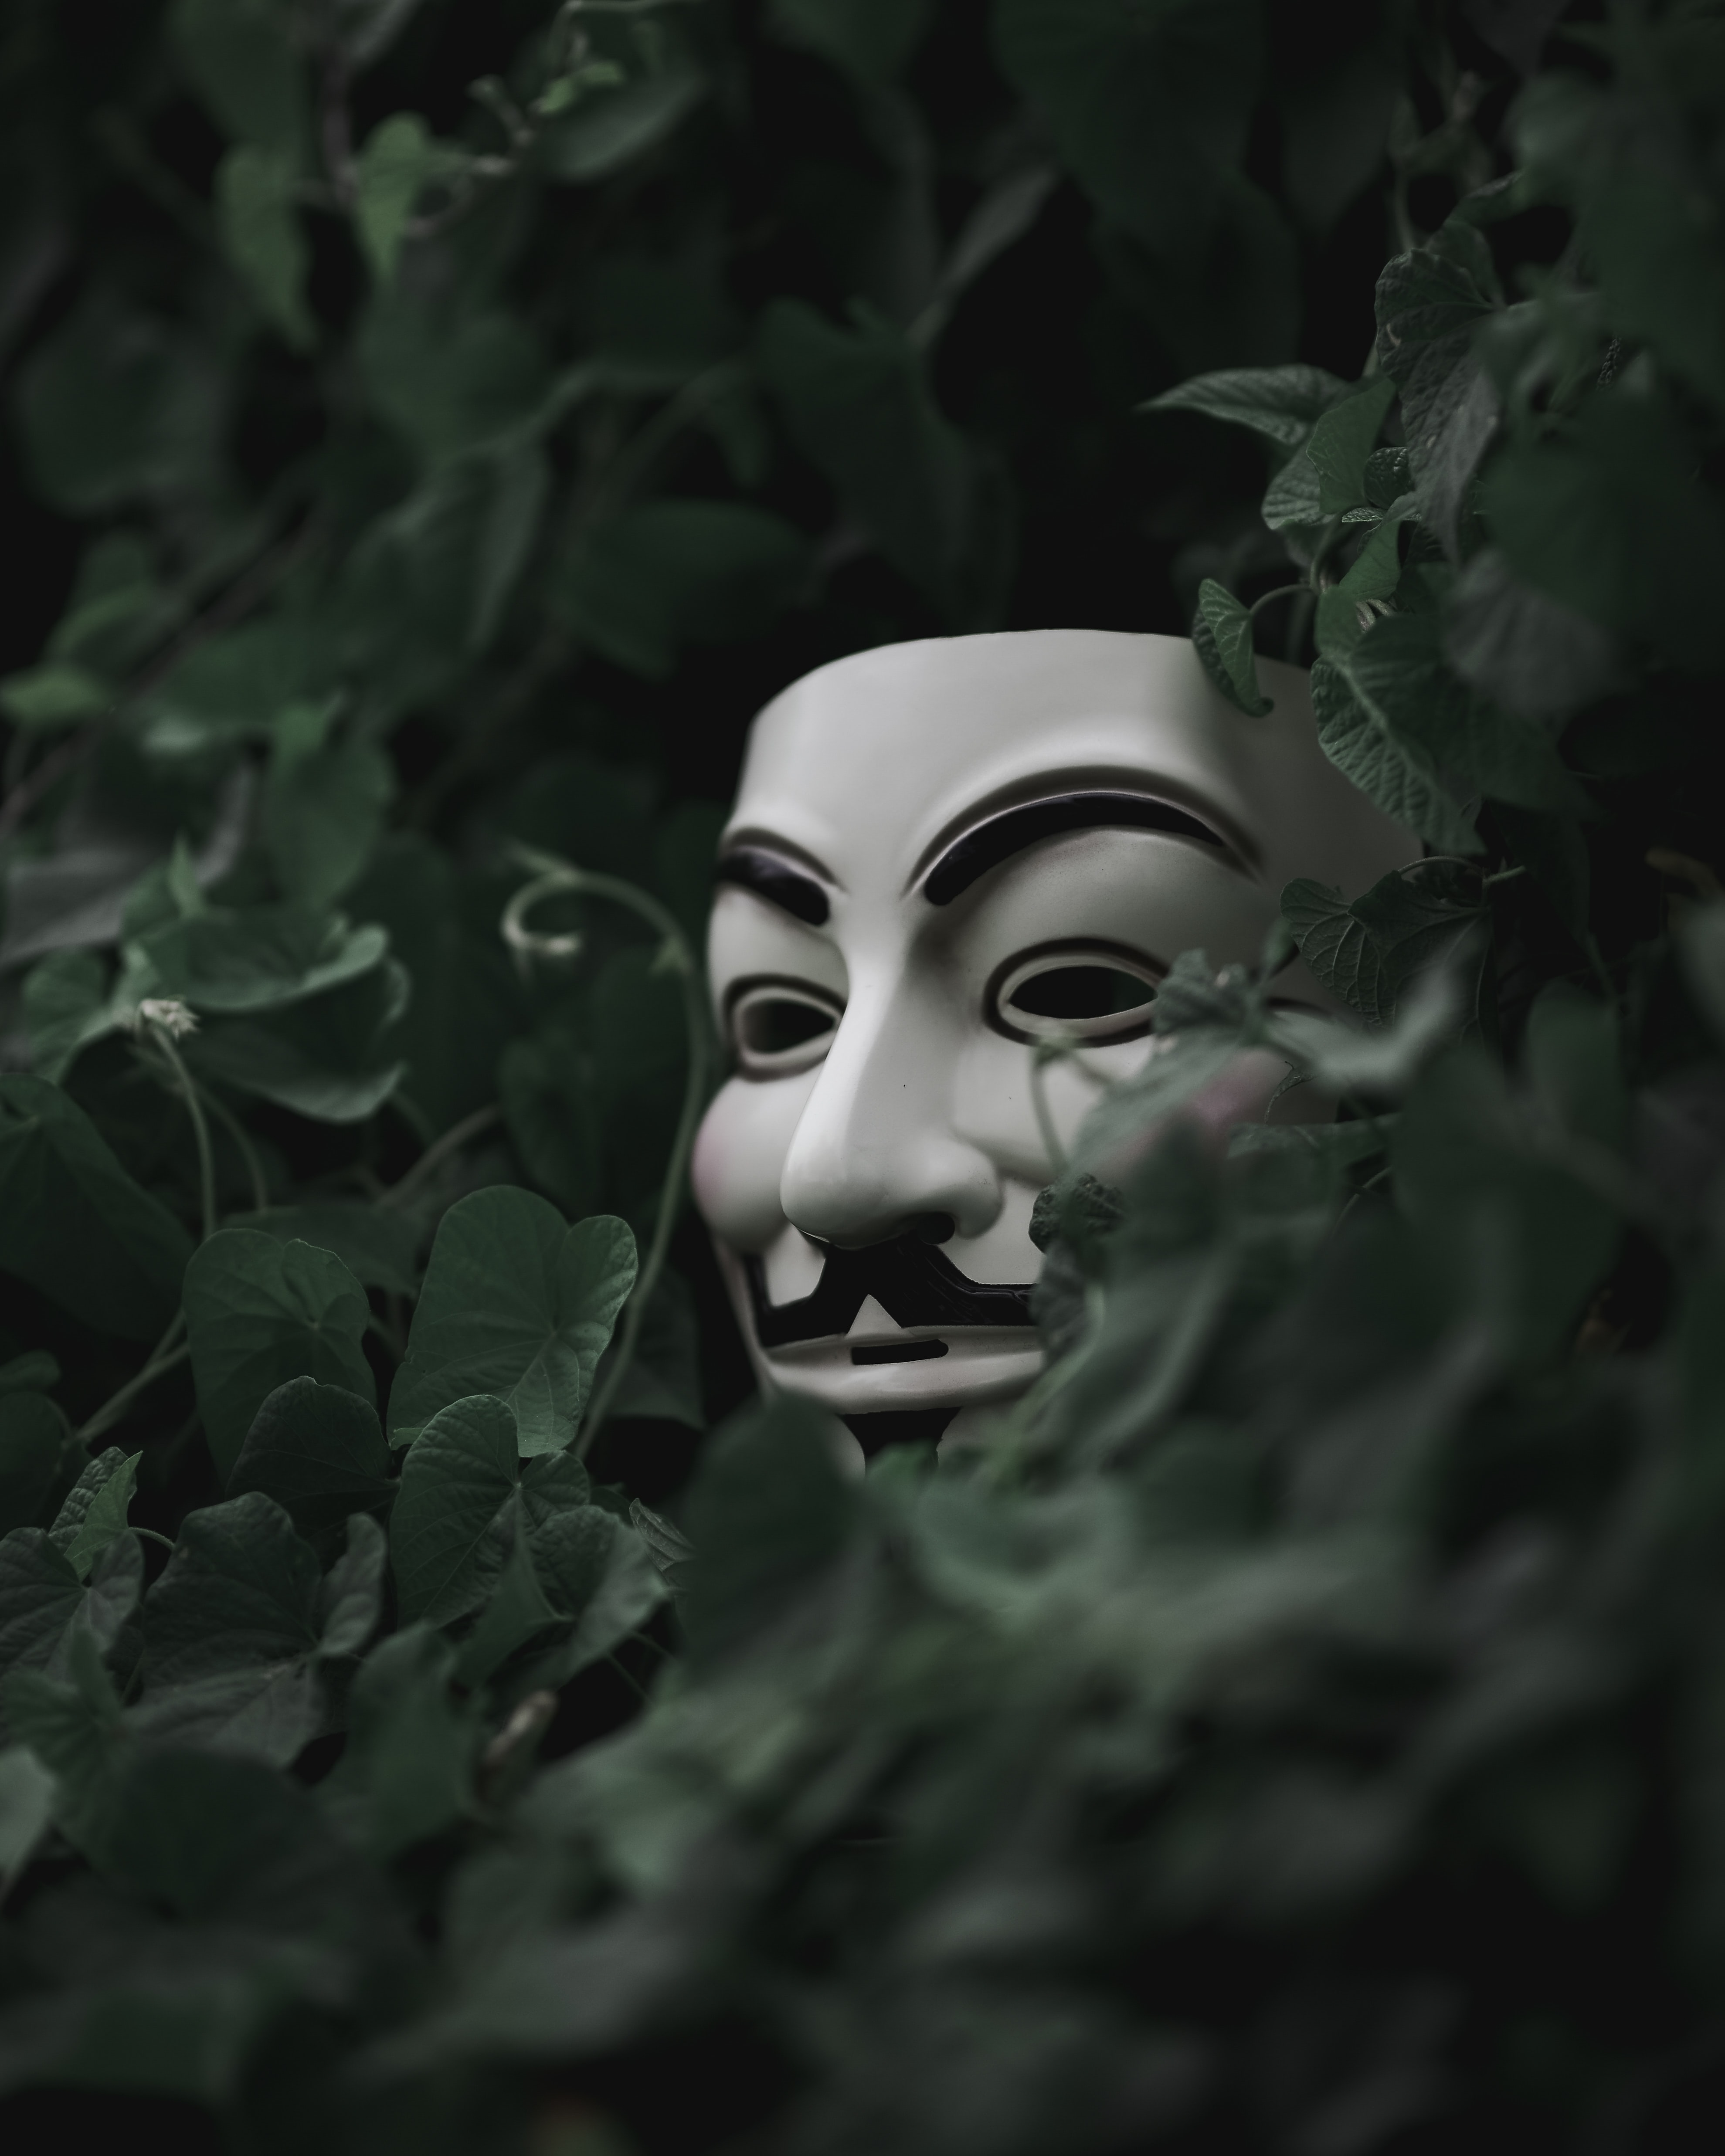 selective focus short of Guy Fawkes mask hiding behind plants